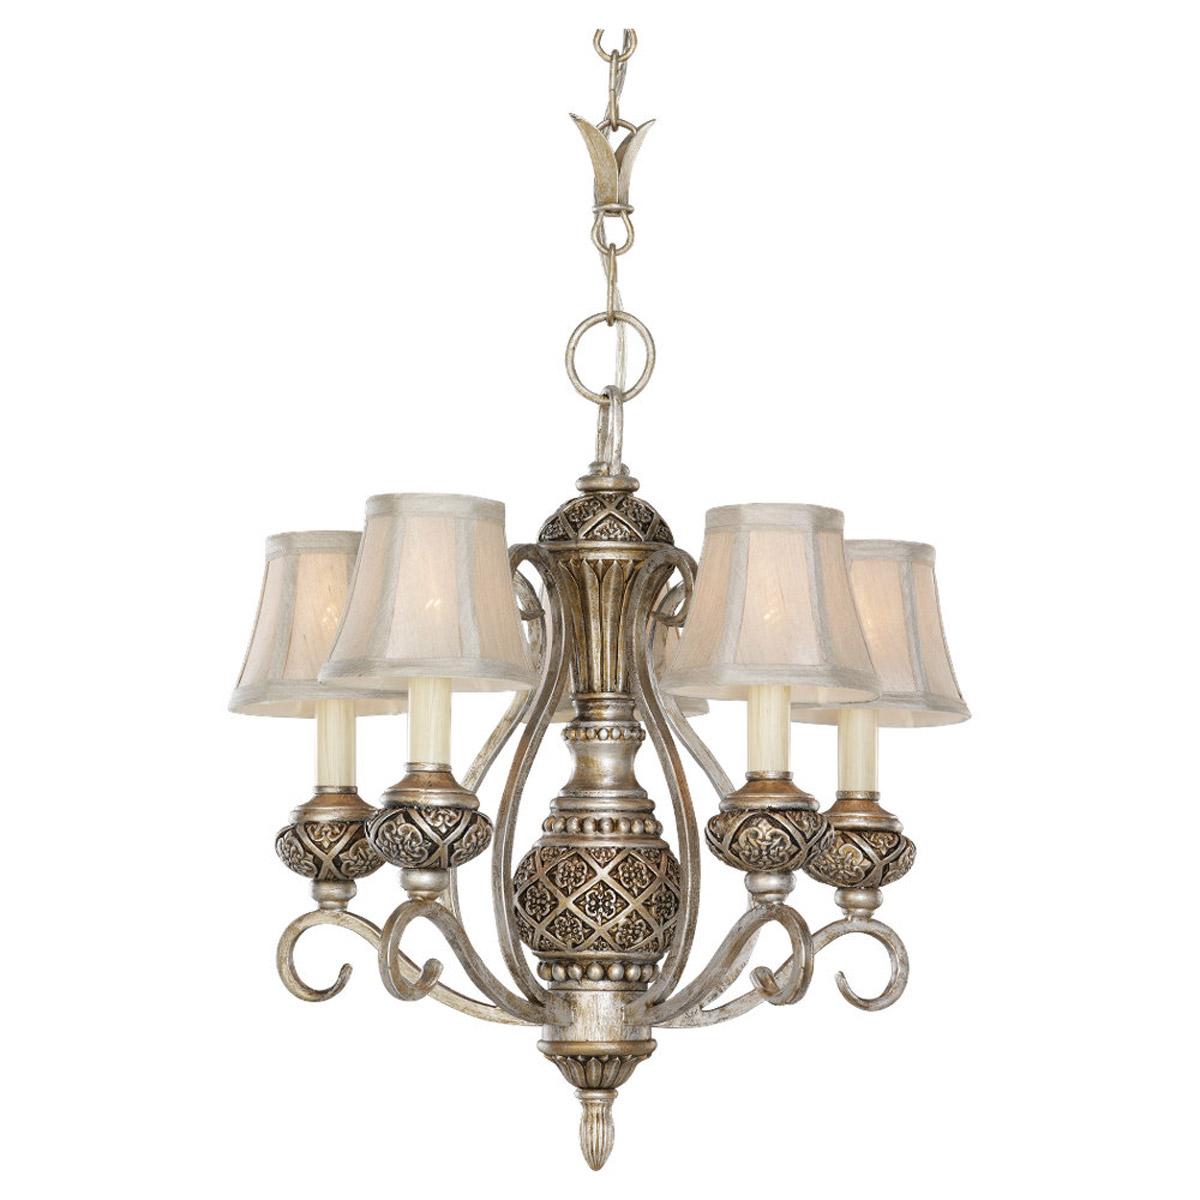 Sea Gull Lighting Highlands 5 Light Chandelier in Palladium 30251-824